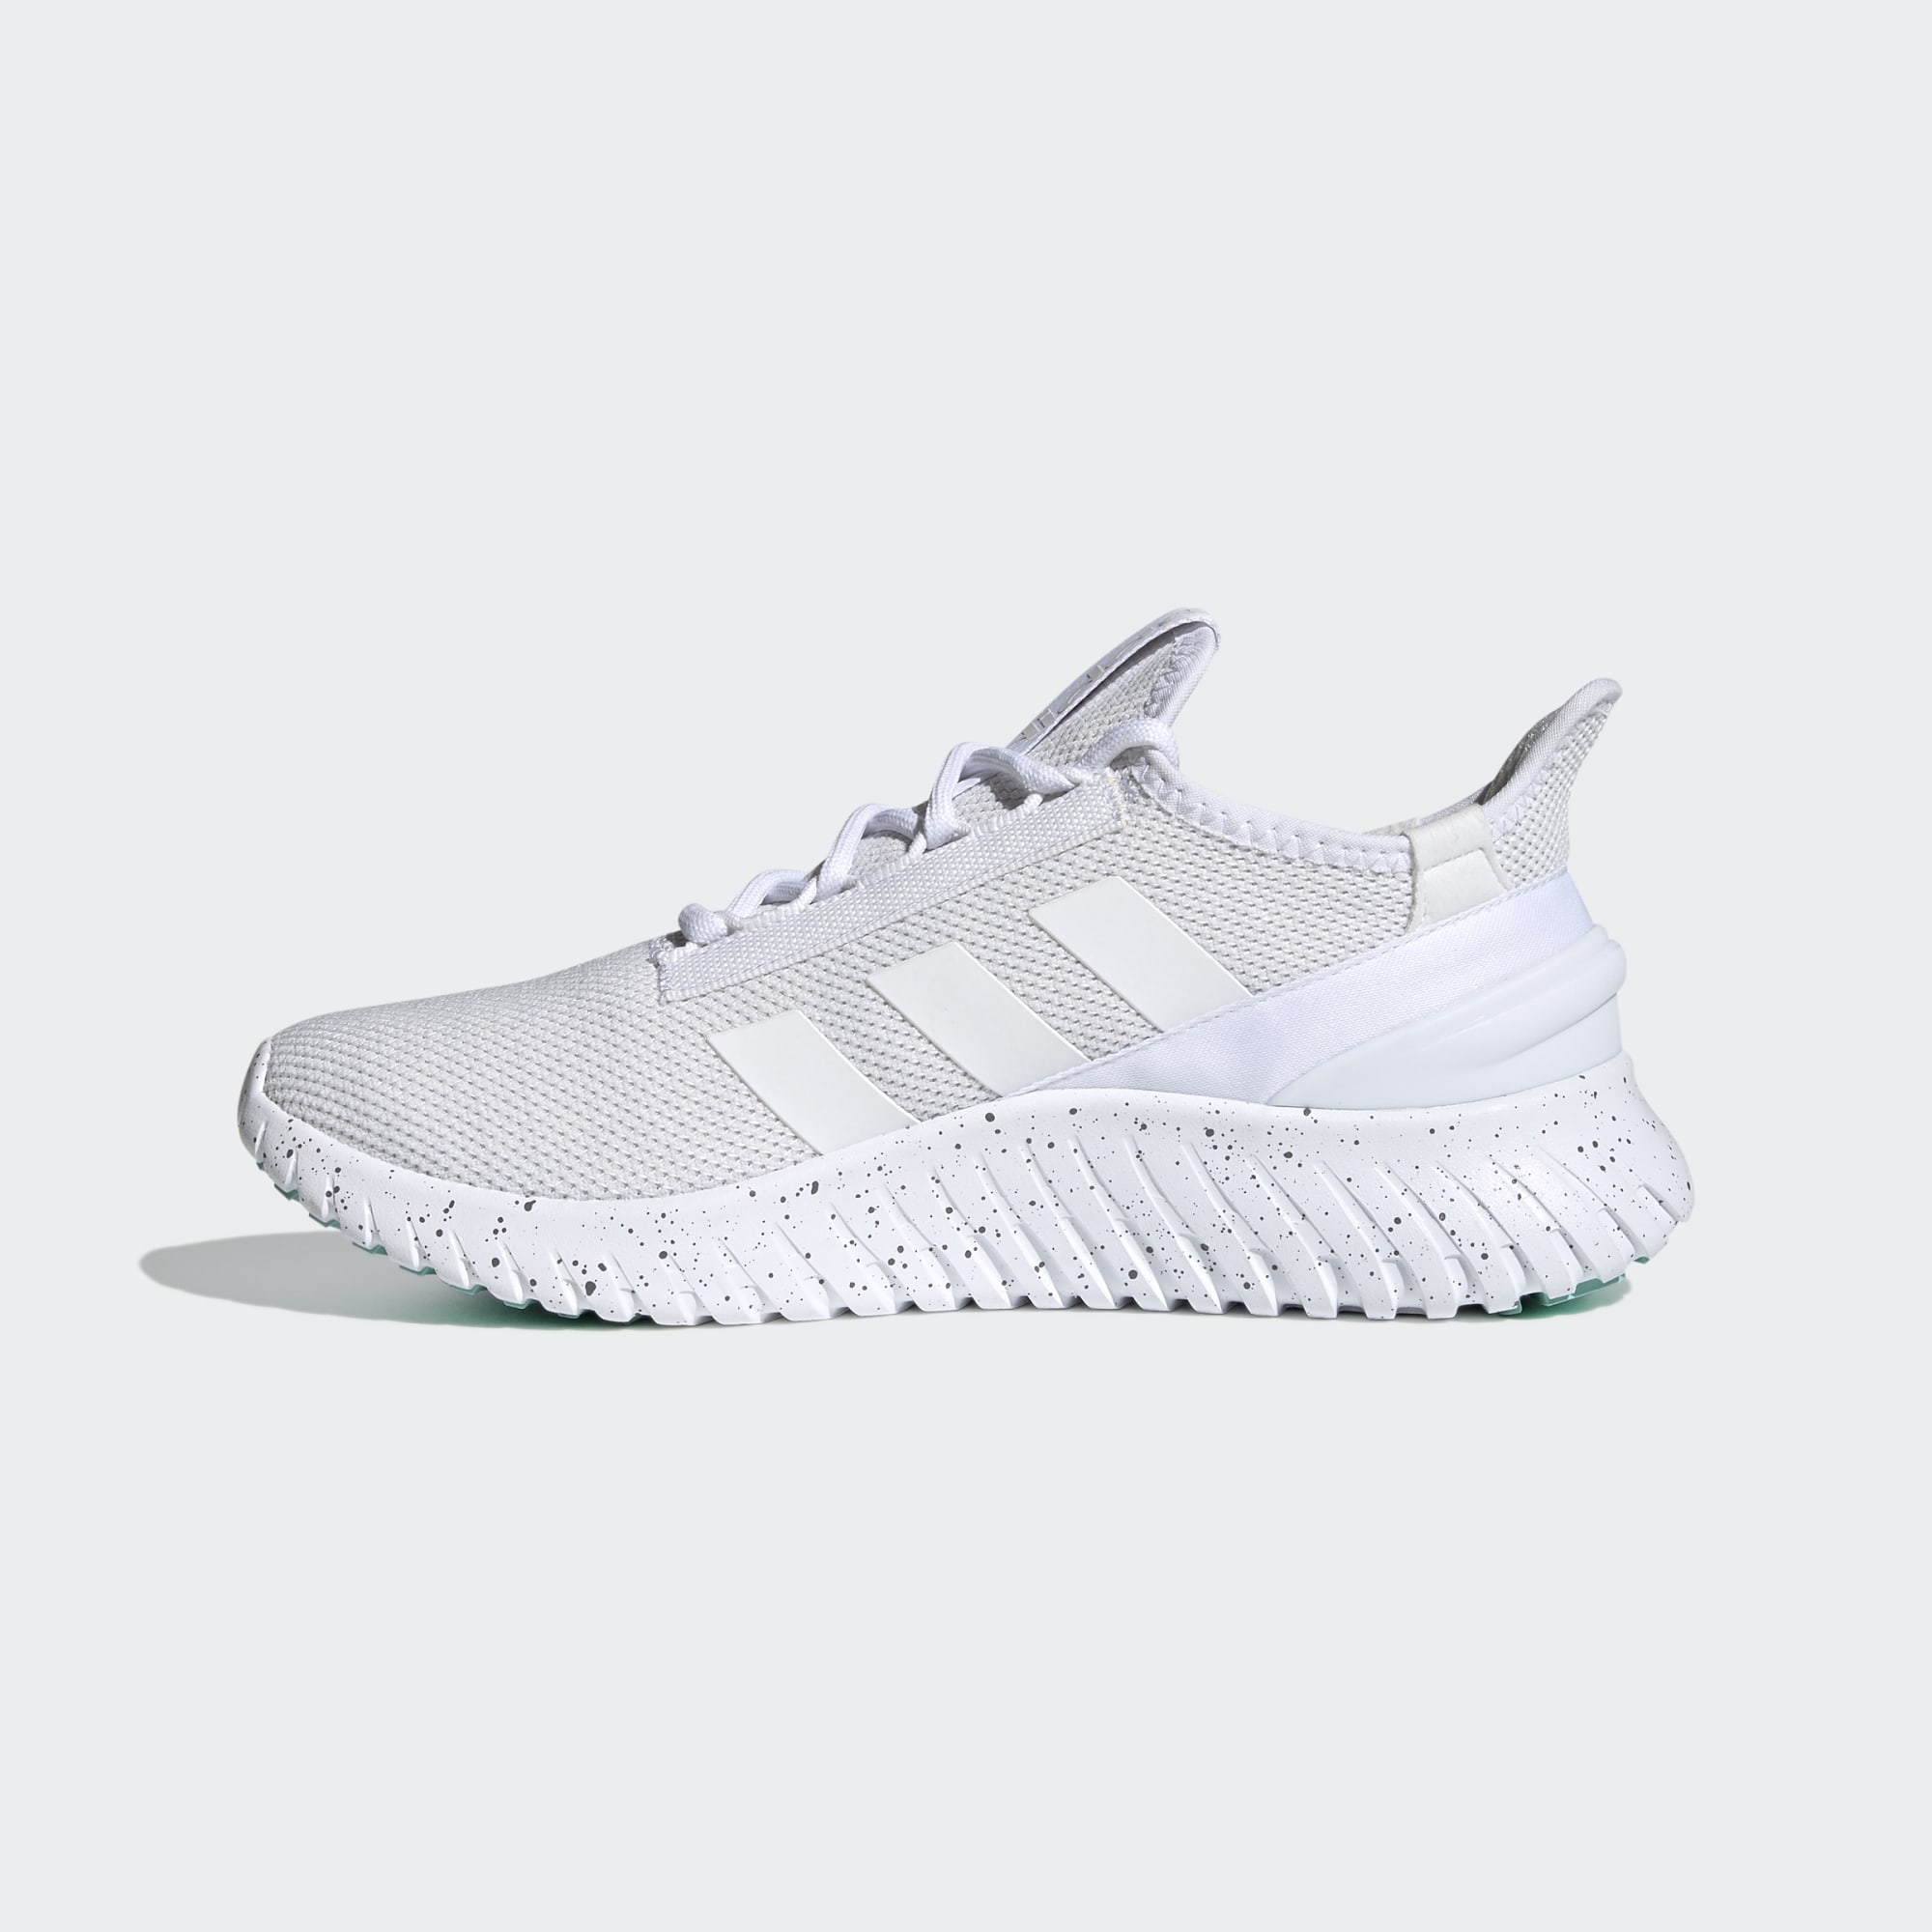 Kaptir_2.0_Shoes_White_H68090_06_standard.jpg